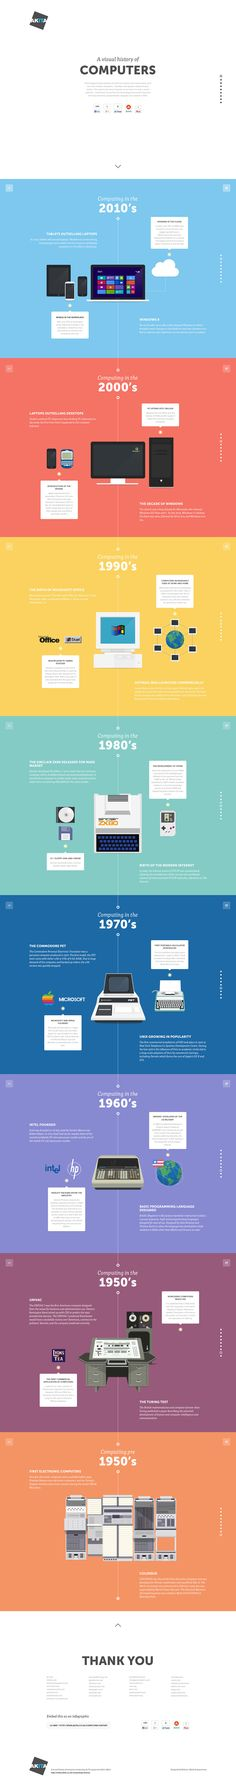 Some stunning illustrations showcasing the history of computers in a long colorful one pager. The 'embed infographic' feature (top left) is a nice touch and the site is responsive too, great job guys!